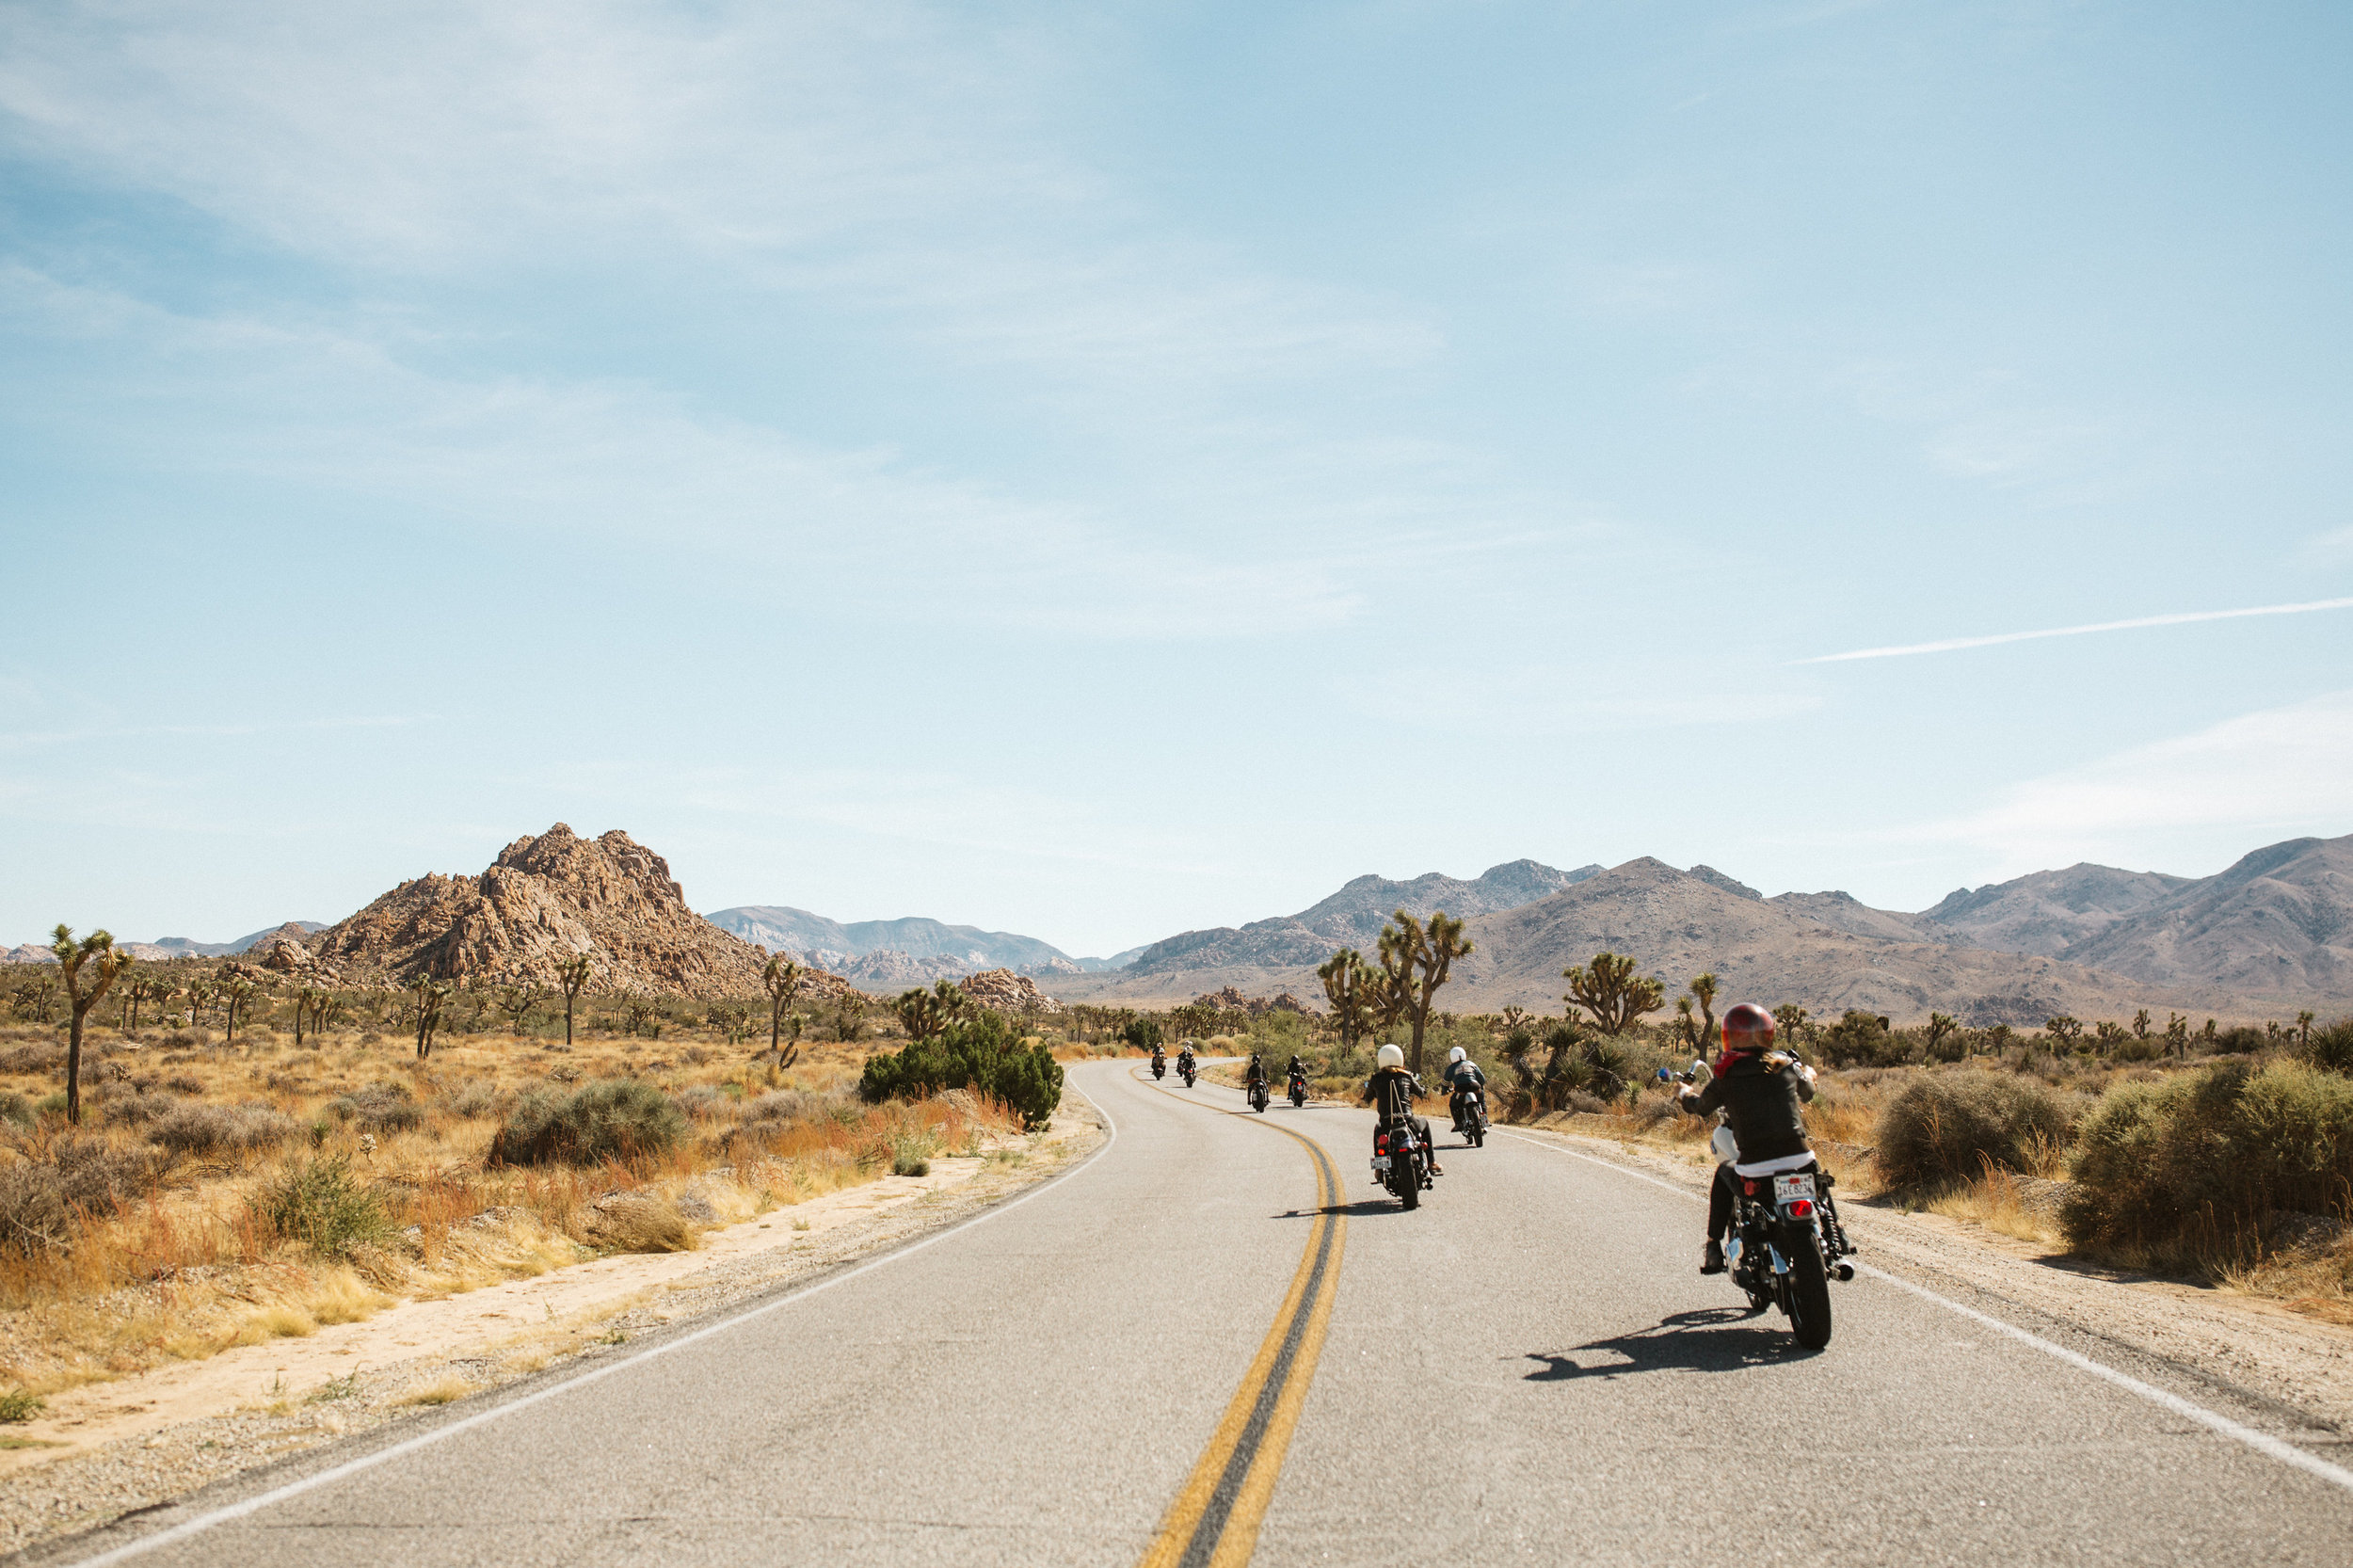 Photo of 2015 Babes Ride Out     Joshua Tree, CA     Courtesy of Jenny Linquist  http://jennylinquist.tumblr.com/